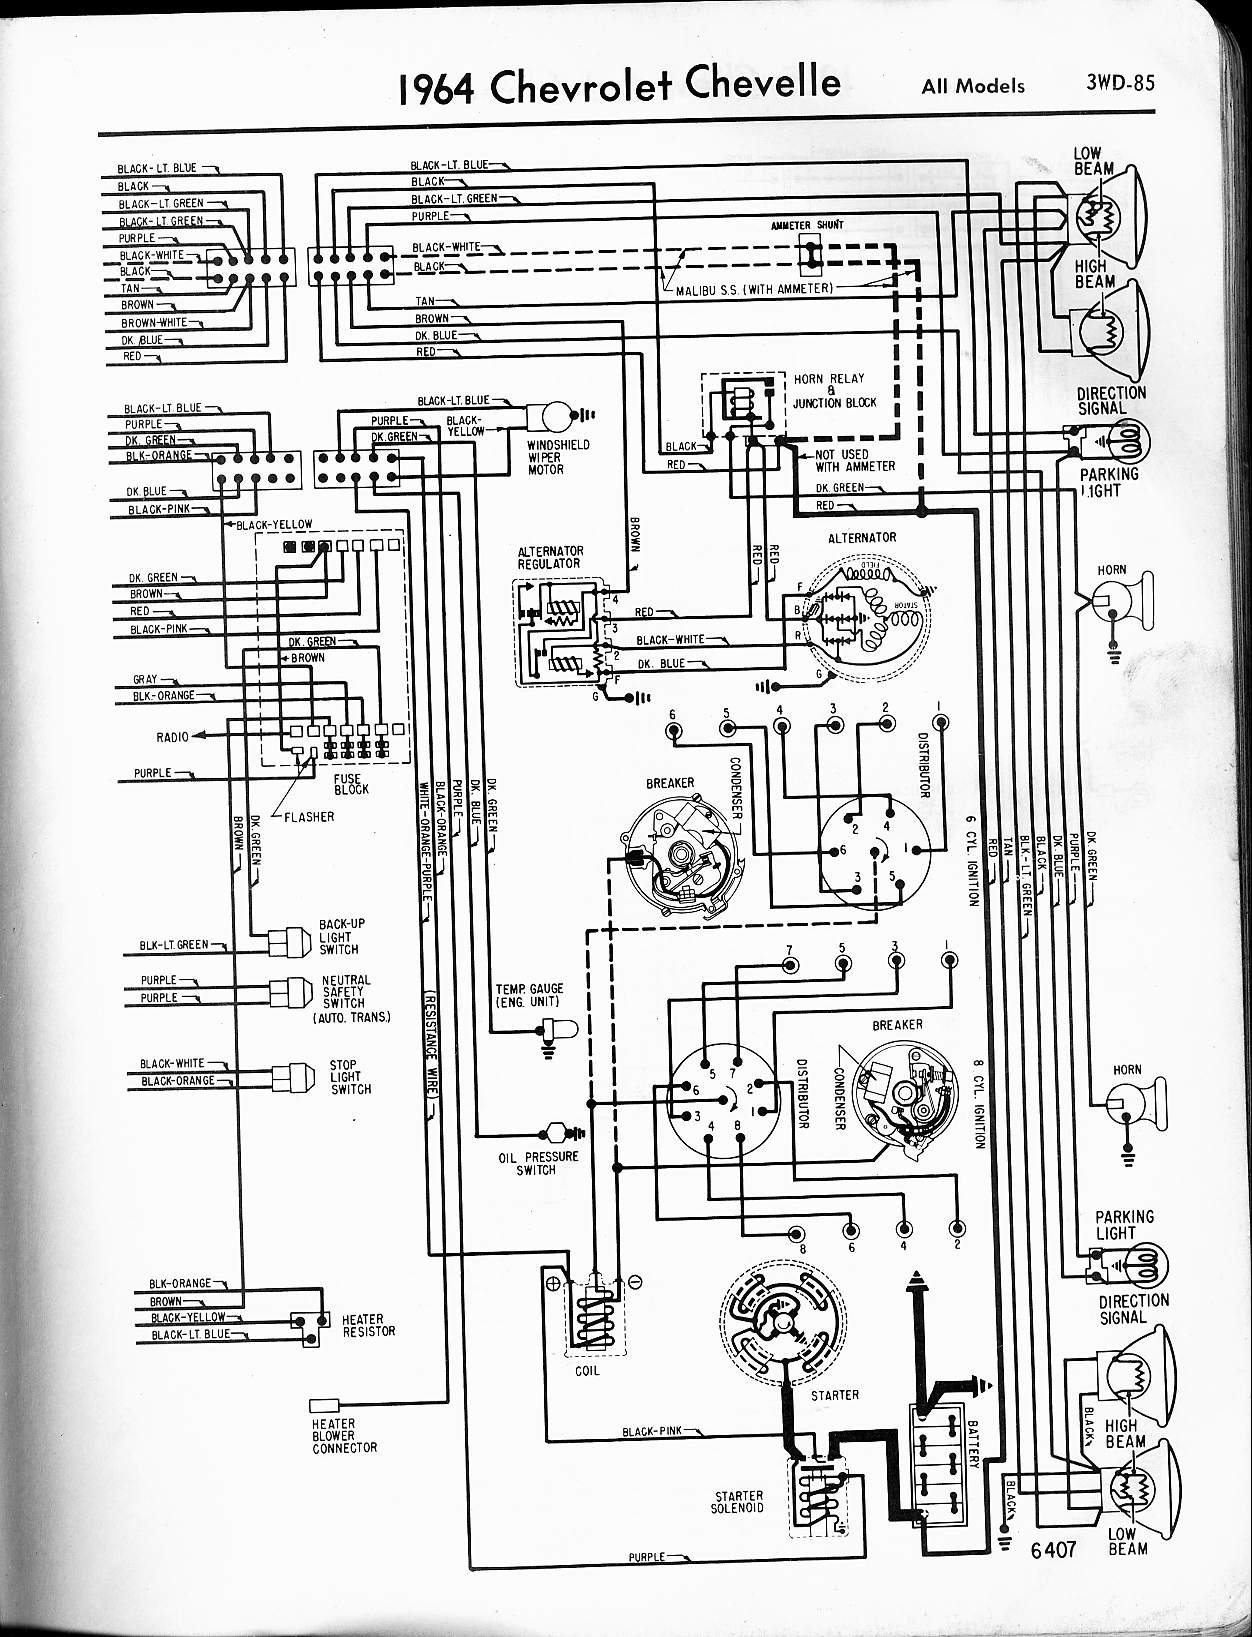 MWireChev64_3WD 085 chevy diagrams GM Alternator Wiring Diagram at panicattacktreatment.co